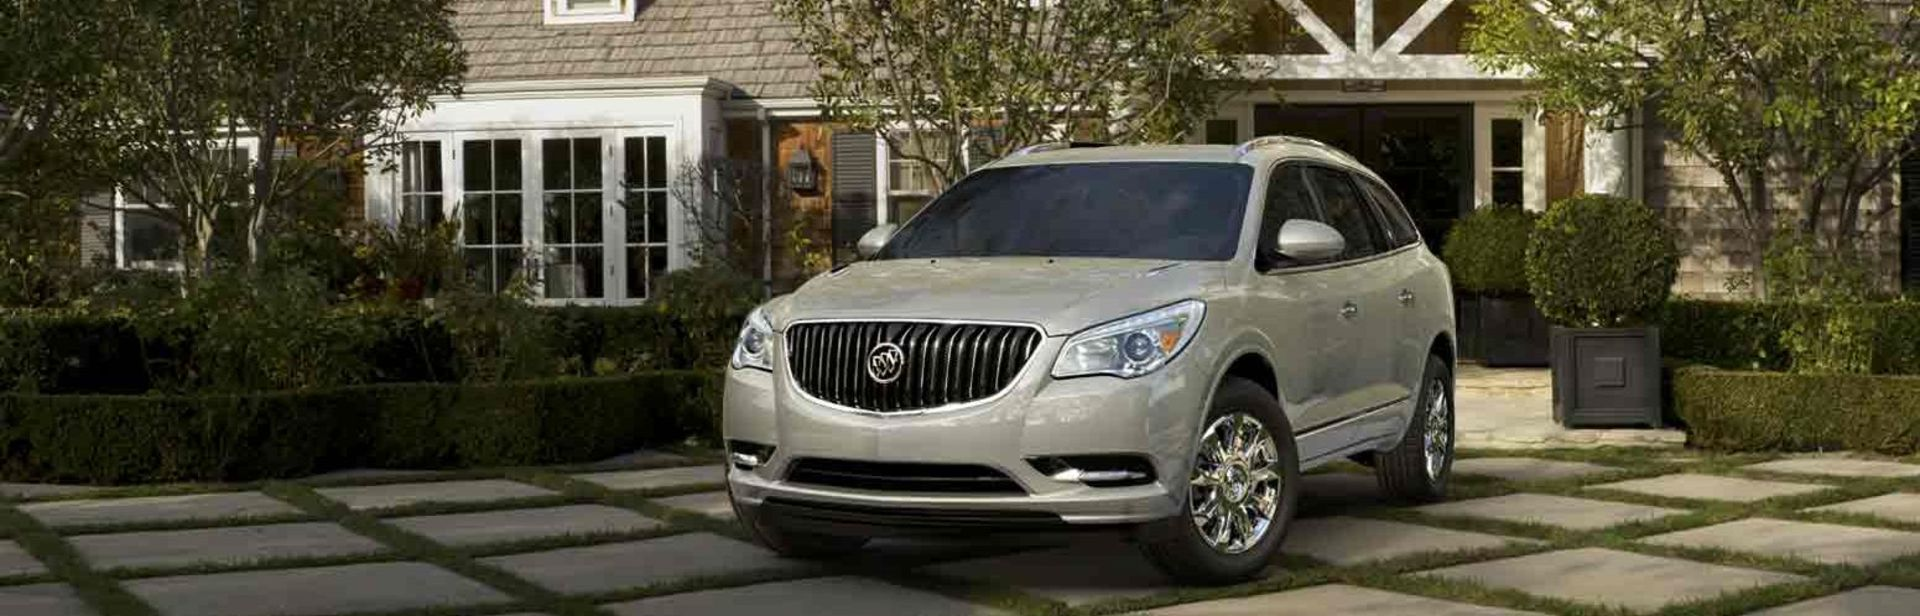 used buick enclave in inventory en for dieppe brunswick new sale